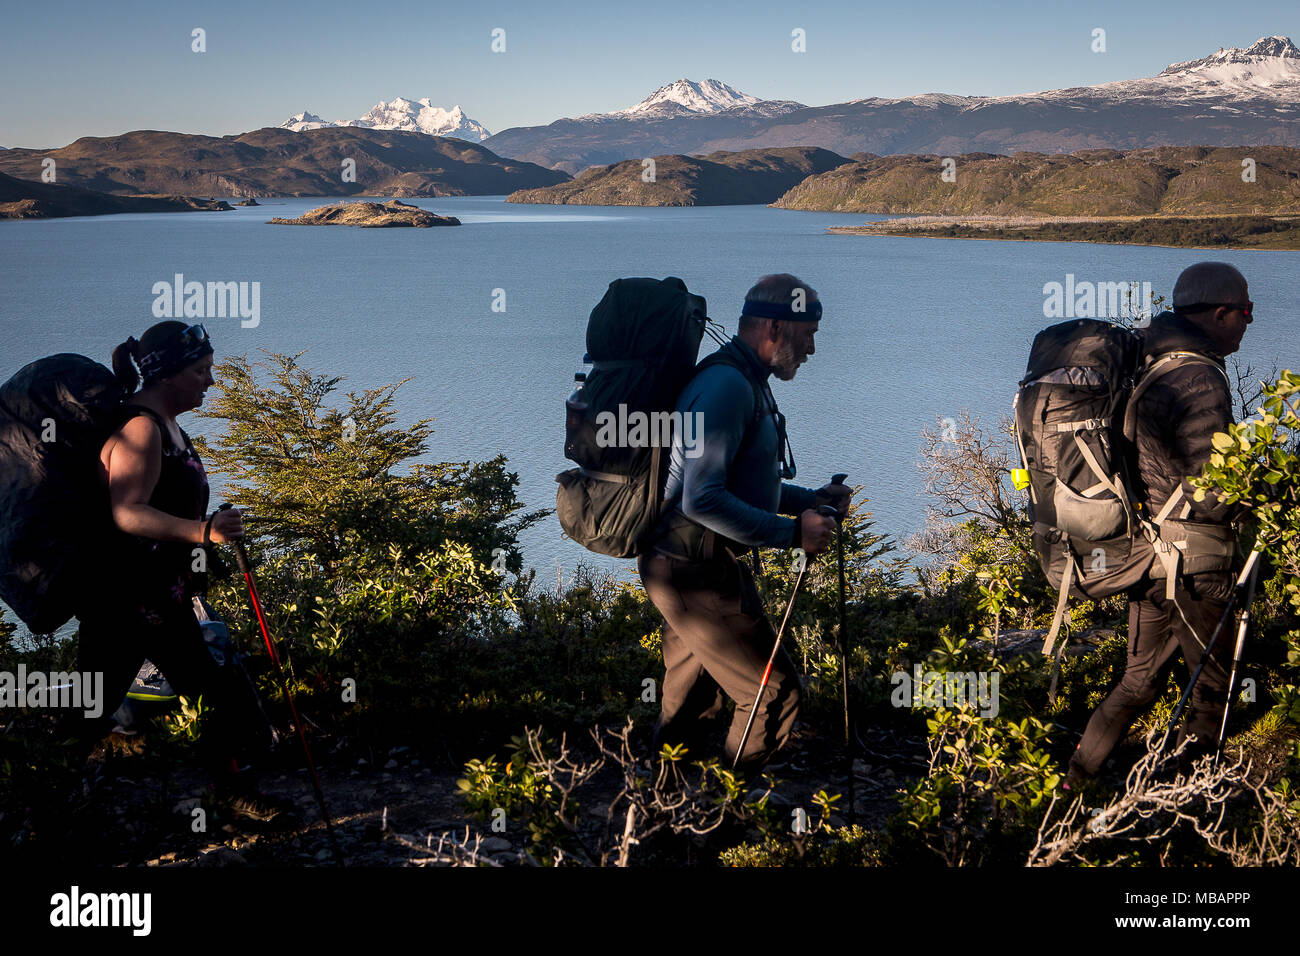 Lago Nordenskjöld and Hikers walking between Cuernos refuge and Campamento Italiano, Torres del Paine national park, Patagonia, Chile - Stock Image